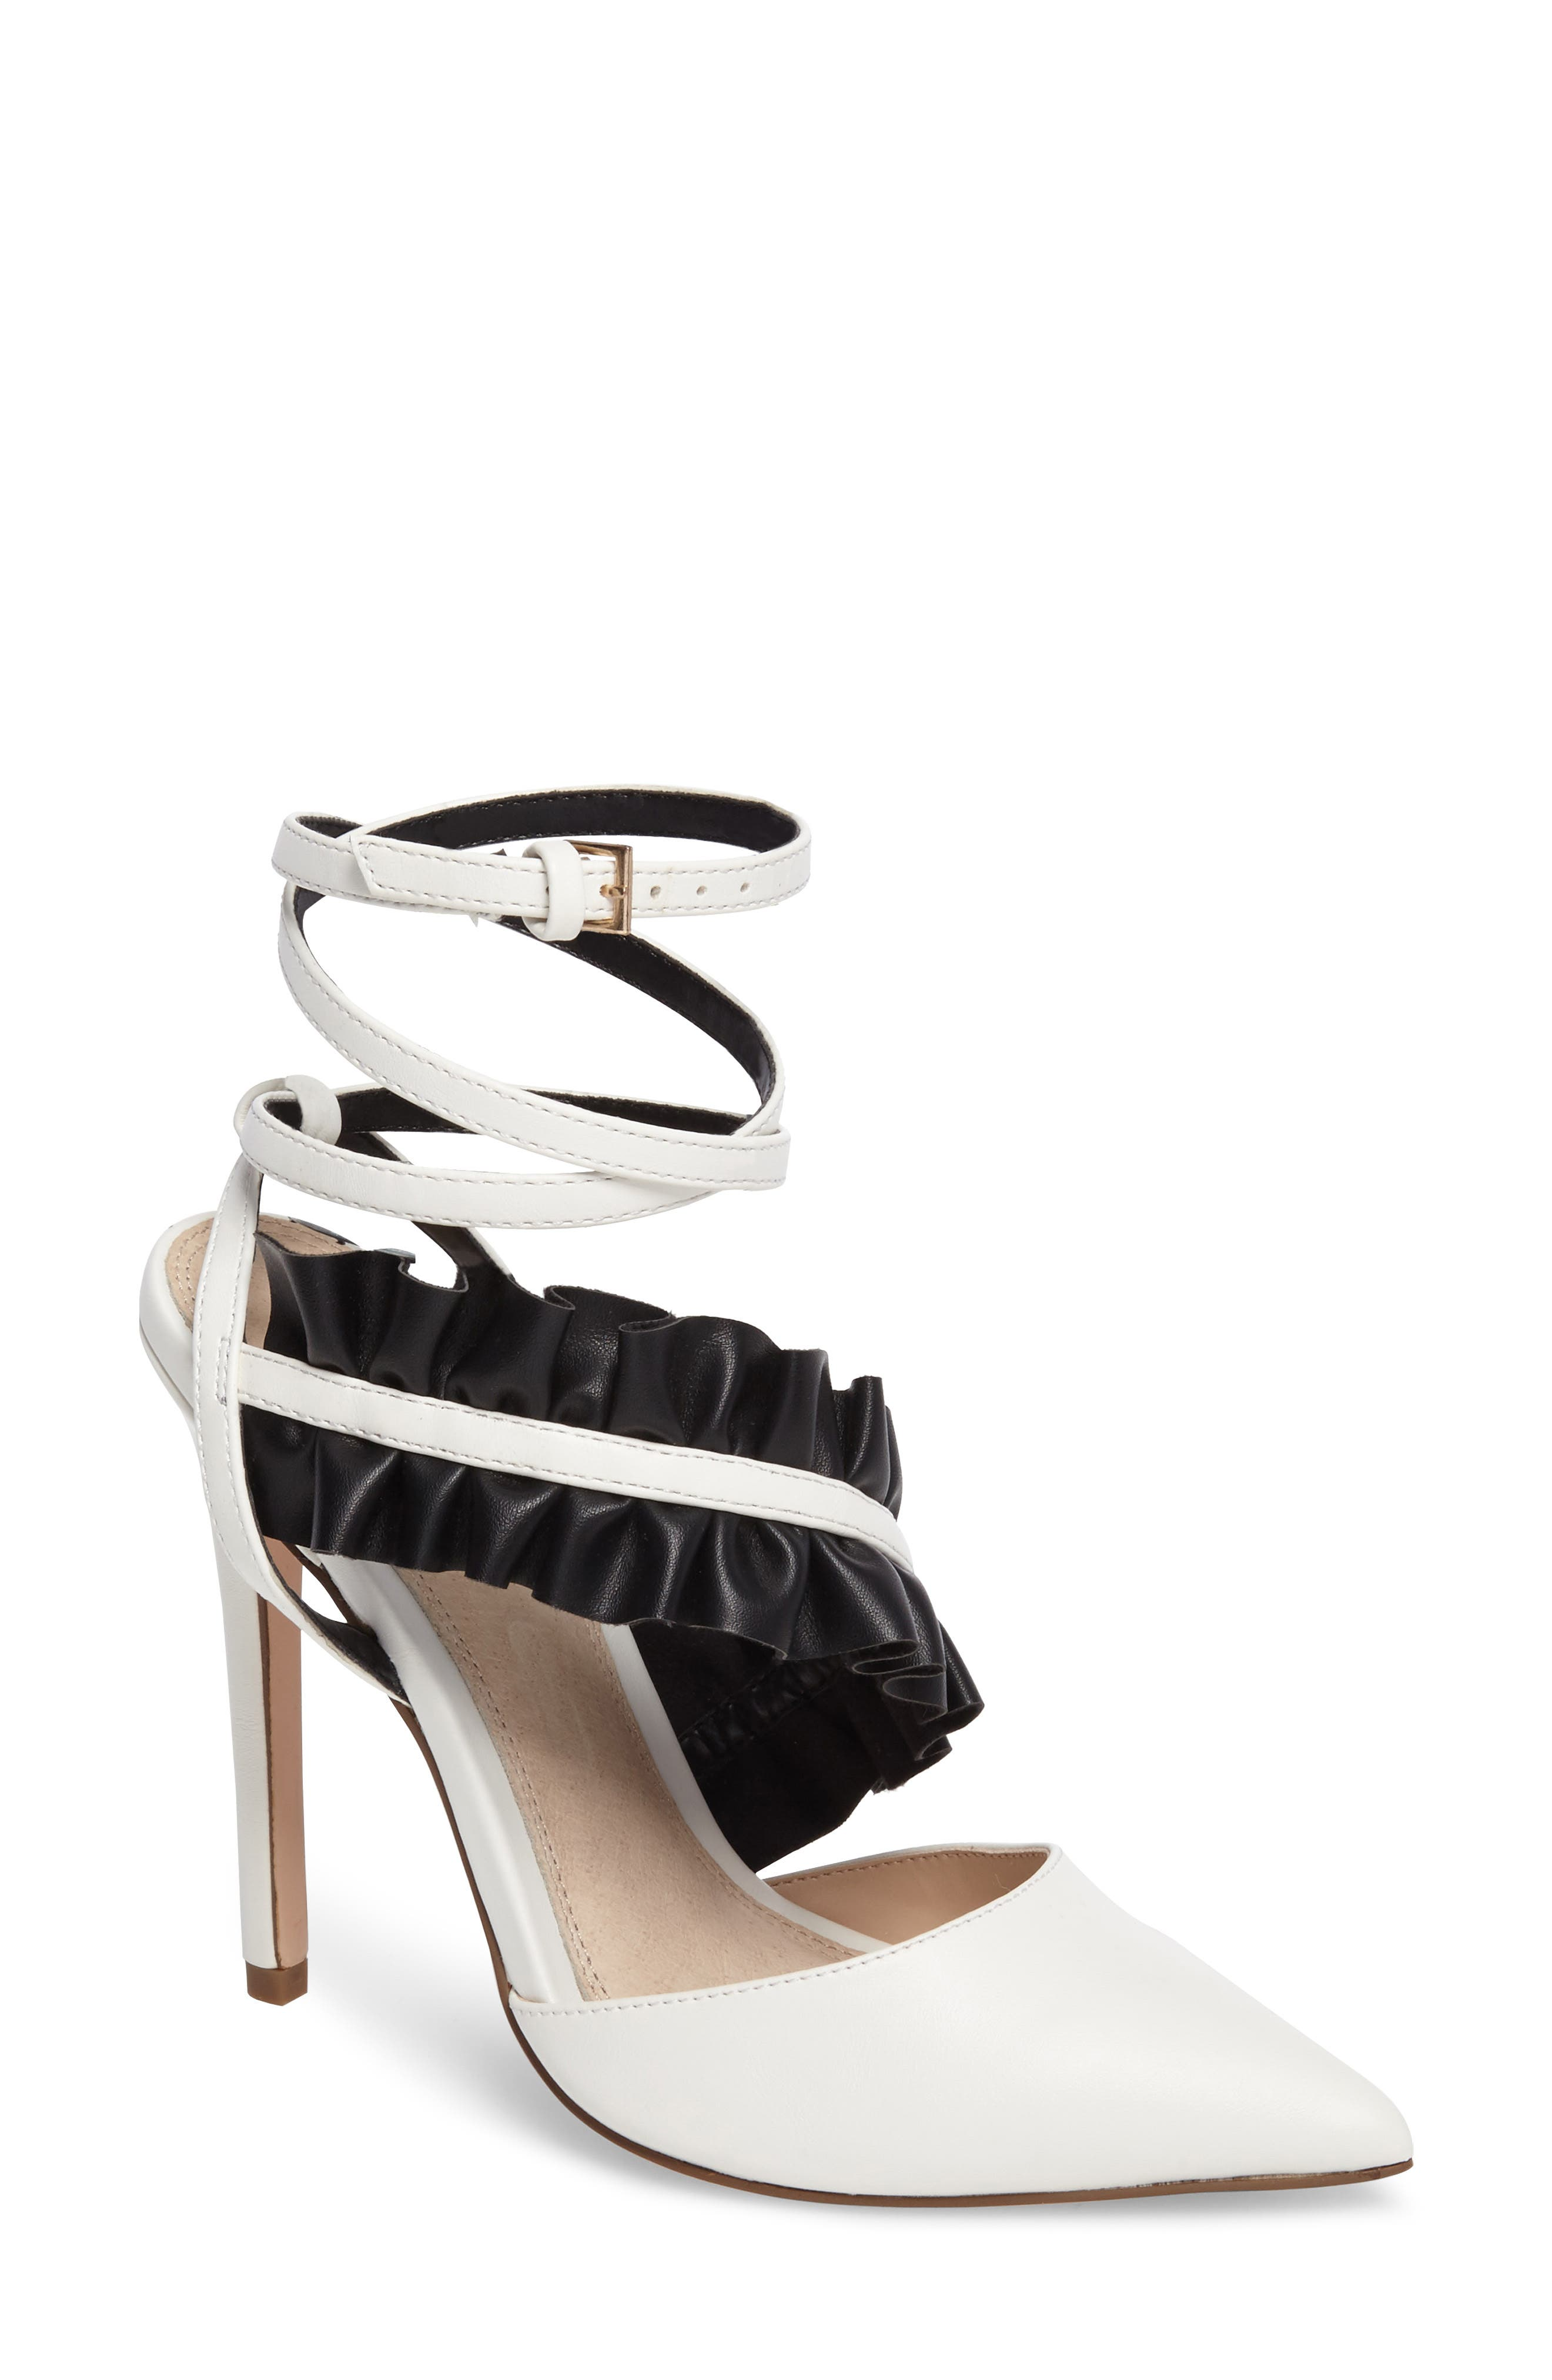 Grill Frill Ankle Strap Pump,                             Main thumbnail 1, color,                             White Multi